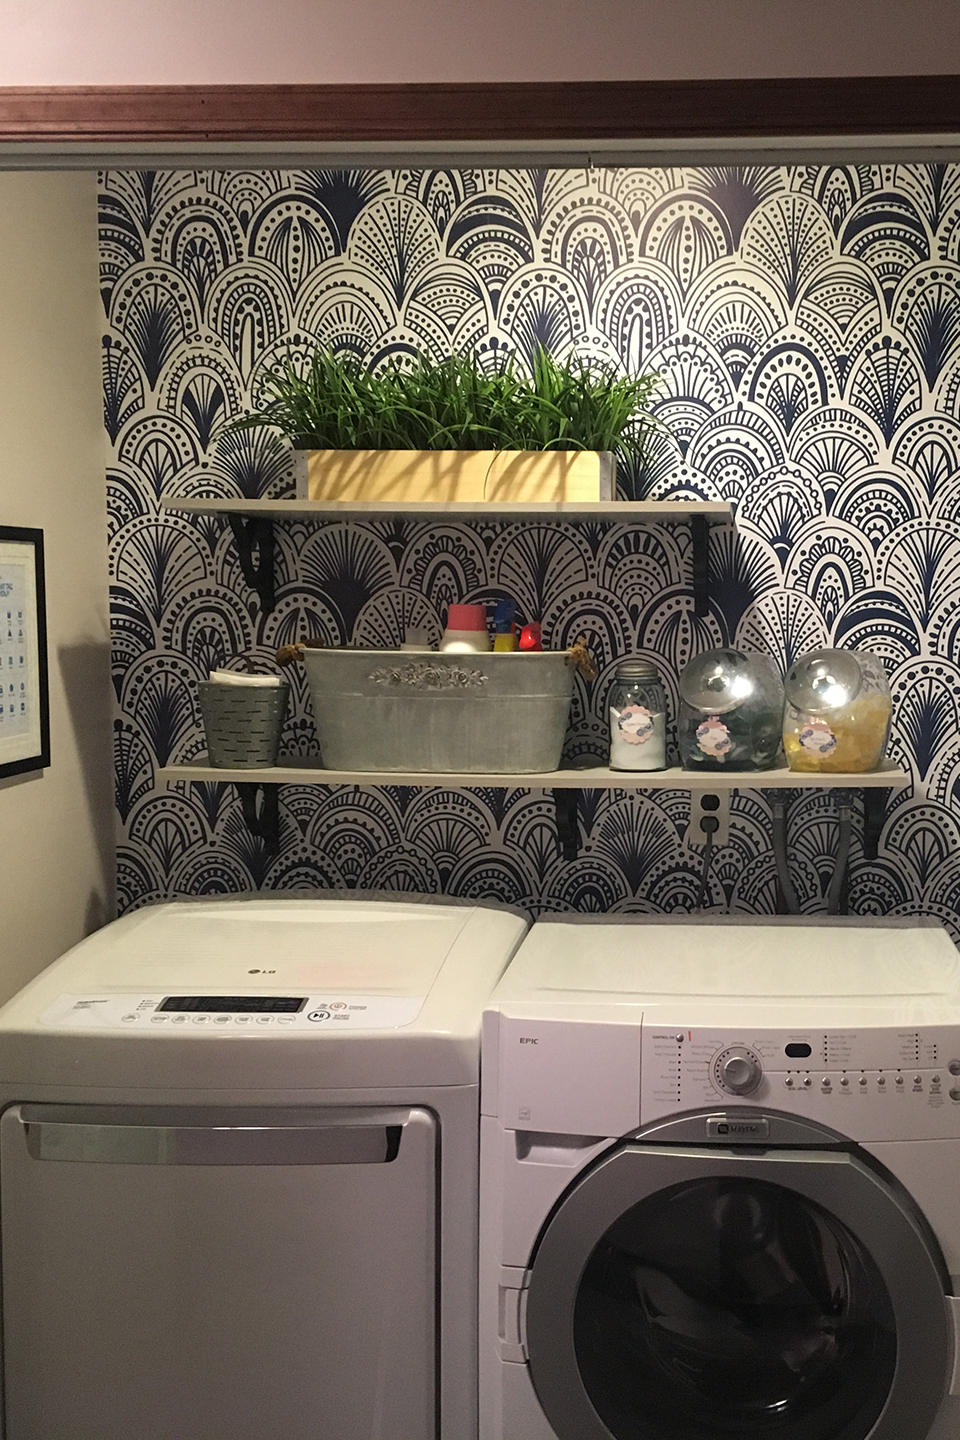 Neatly organized laundry closet with shelves and wallpaper